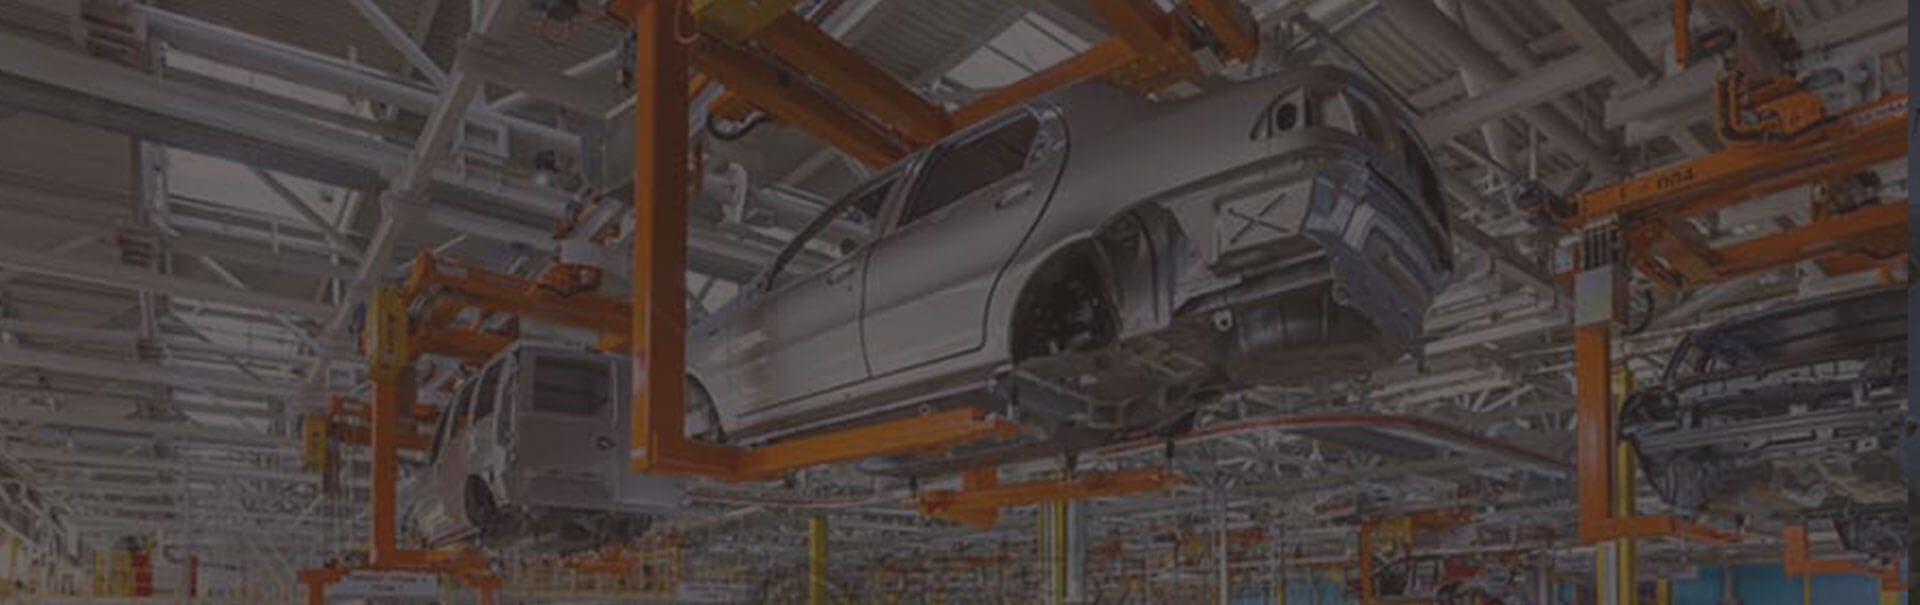 What changes will 3d scanning plus automobile assembly bring to the automobile manufacturing industry?